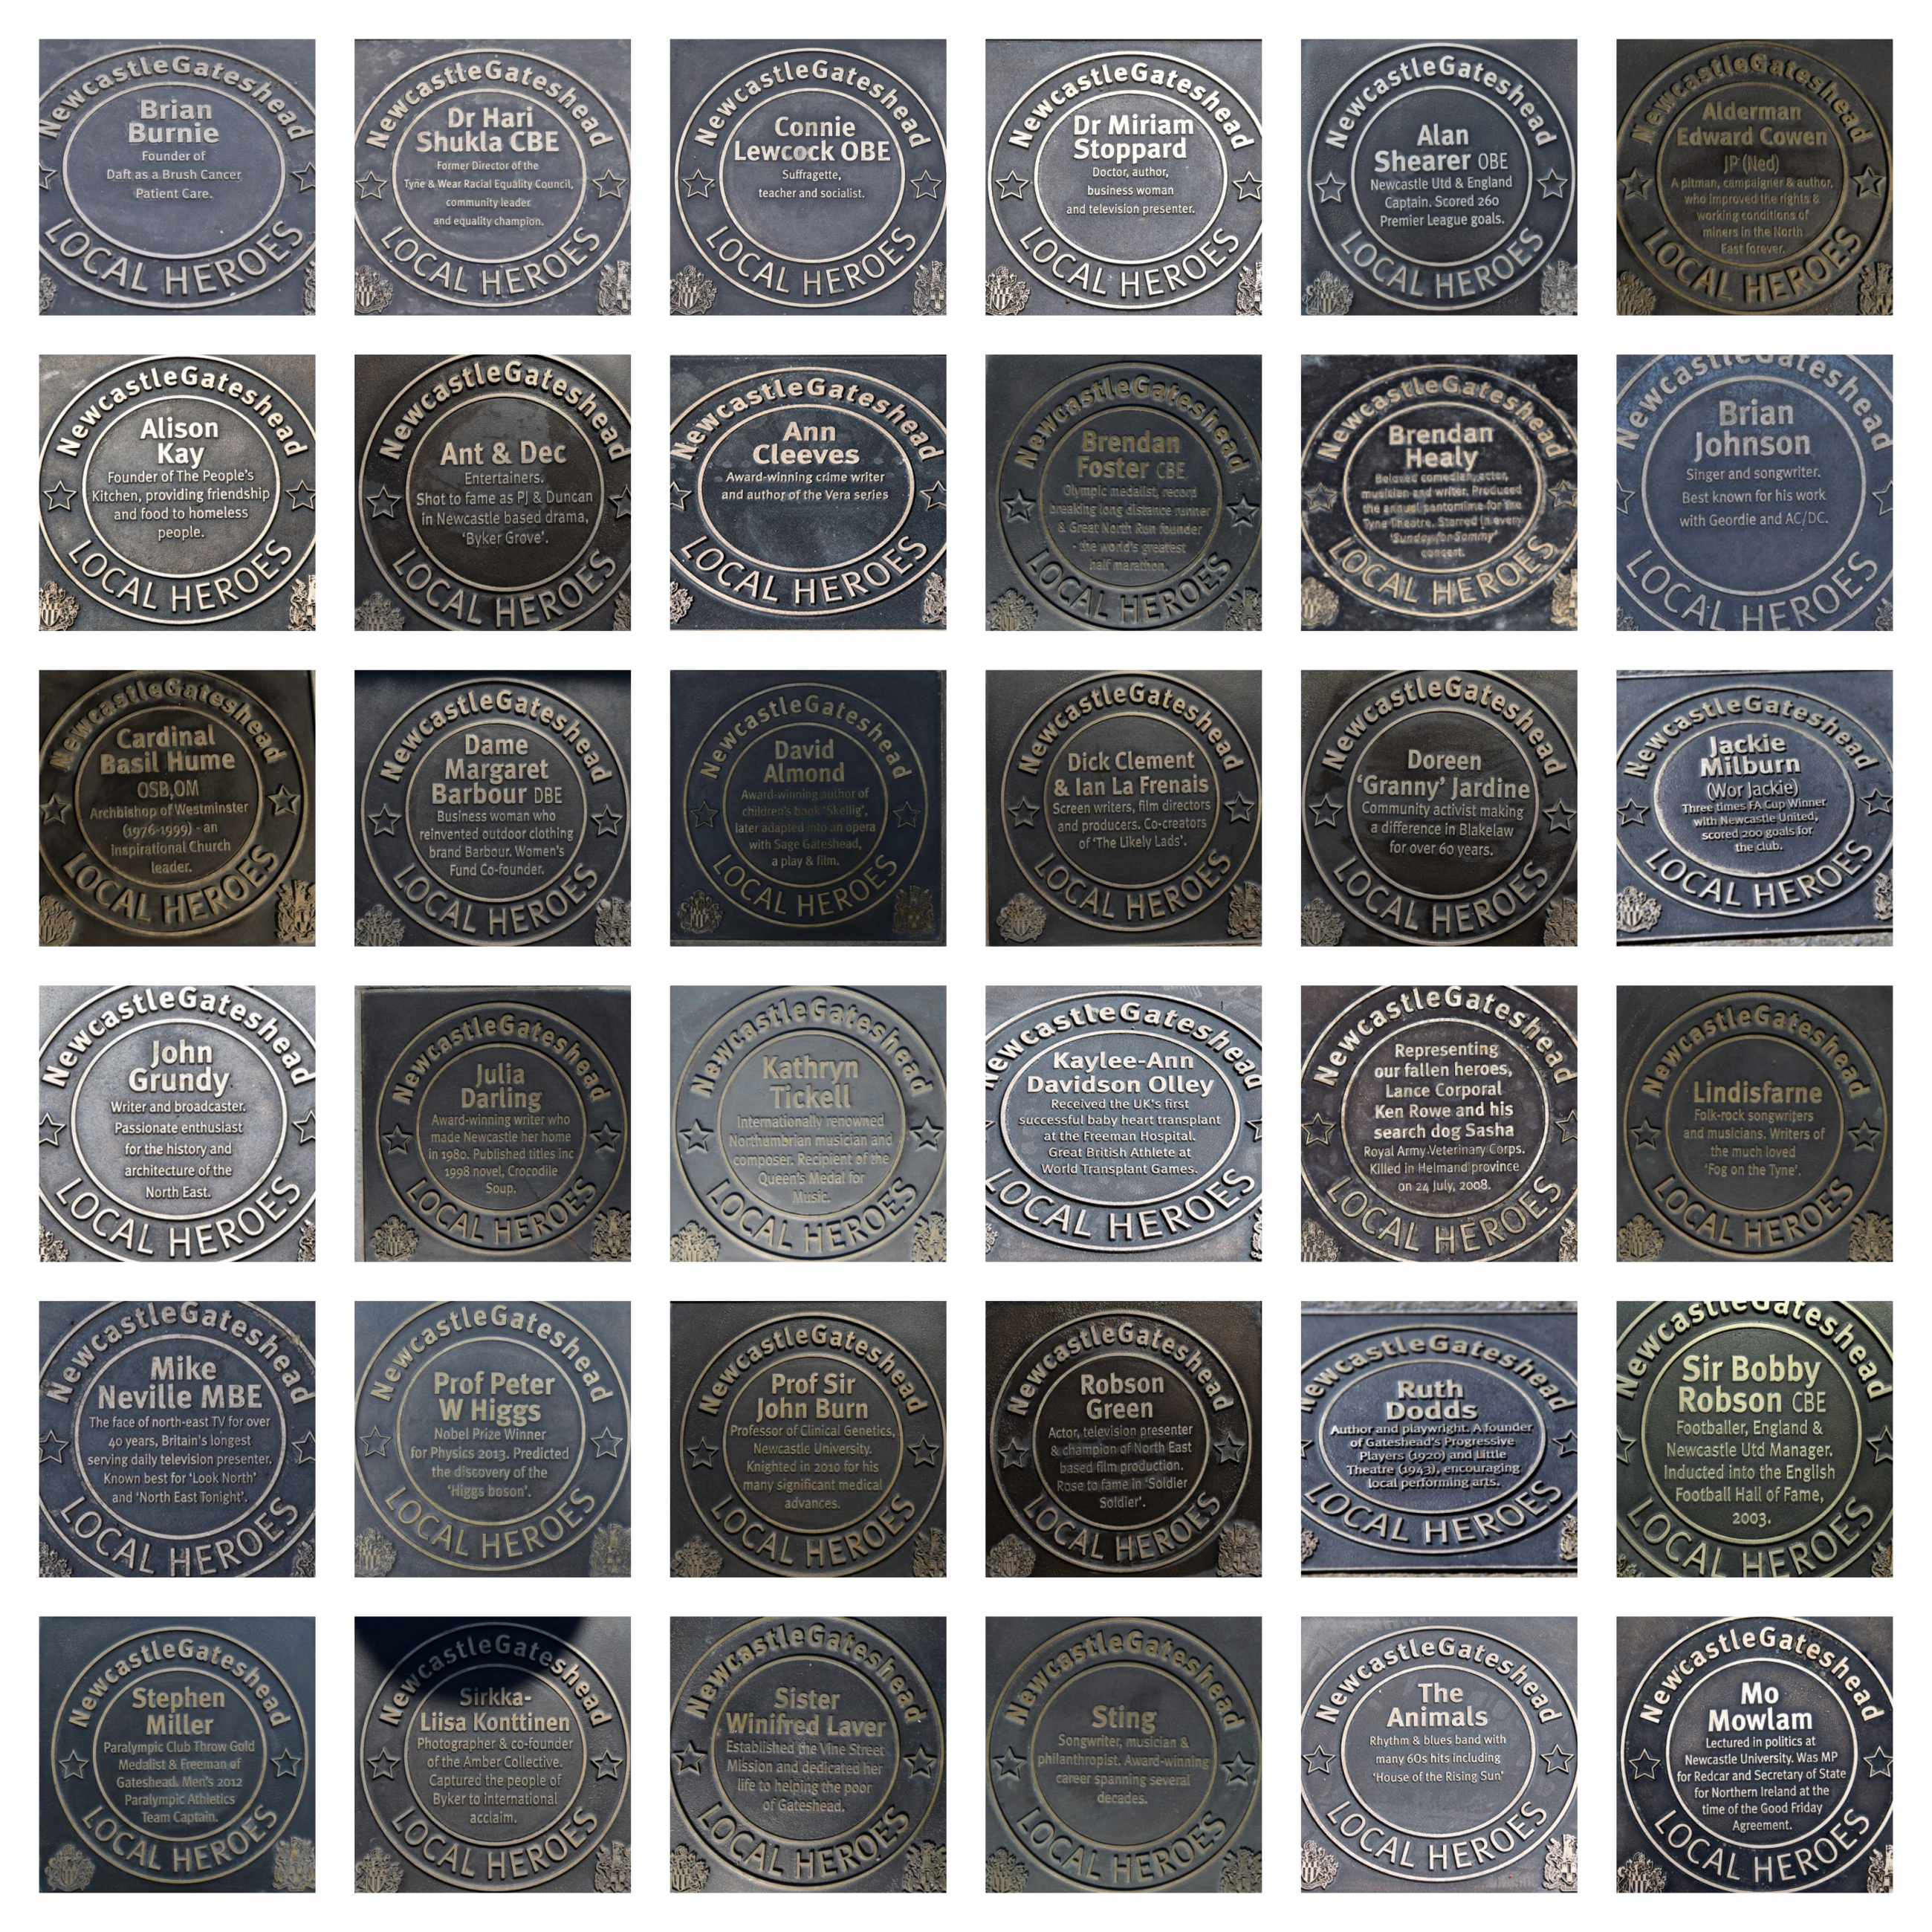 Bronze plaques honour 41 Local Heroes on the trail around Newcastle and Gateshead Quayside